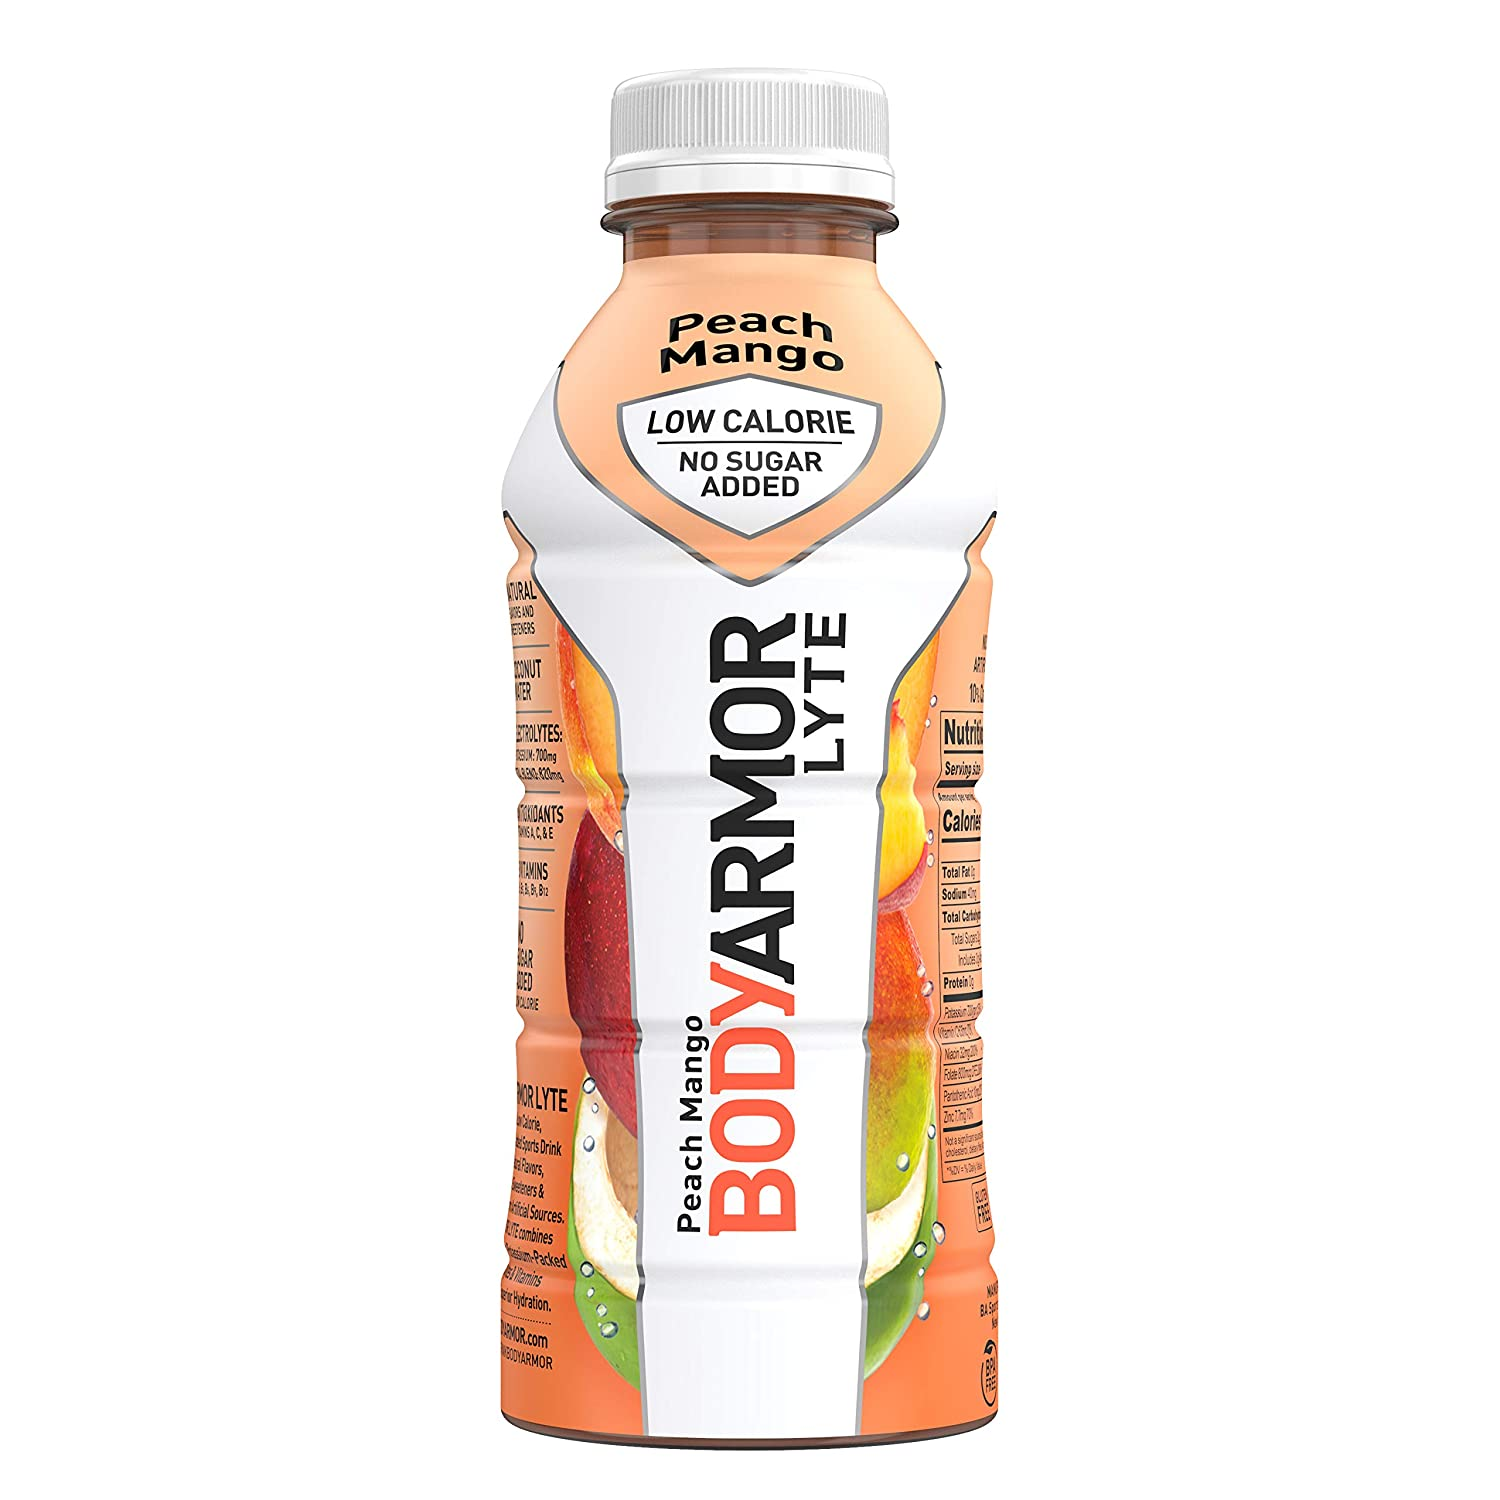 BODYARMOR LYTE Sports Drink Low-Calorie Sports Beverage, Peach Mango, Natural Flavors With Vitamins, Potassium-Packed Electrolytes, No Preservatives, Perfect For Athletes, 16 Fl Oz